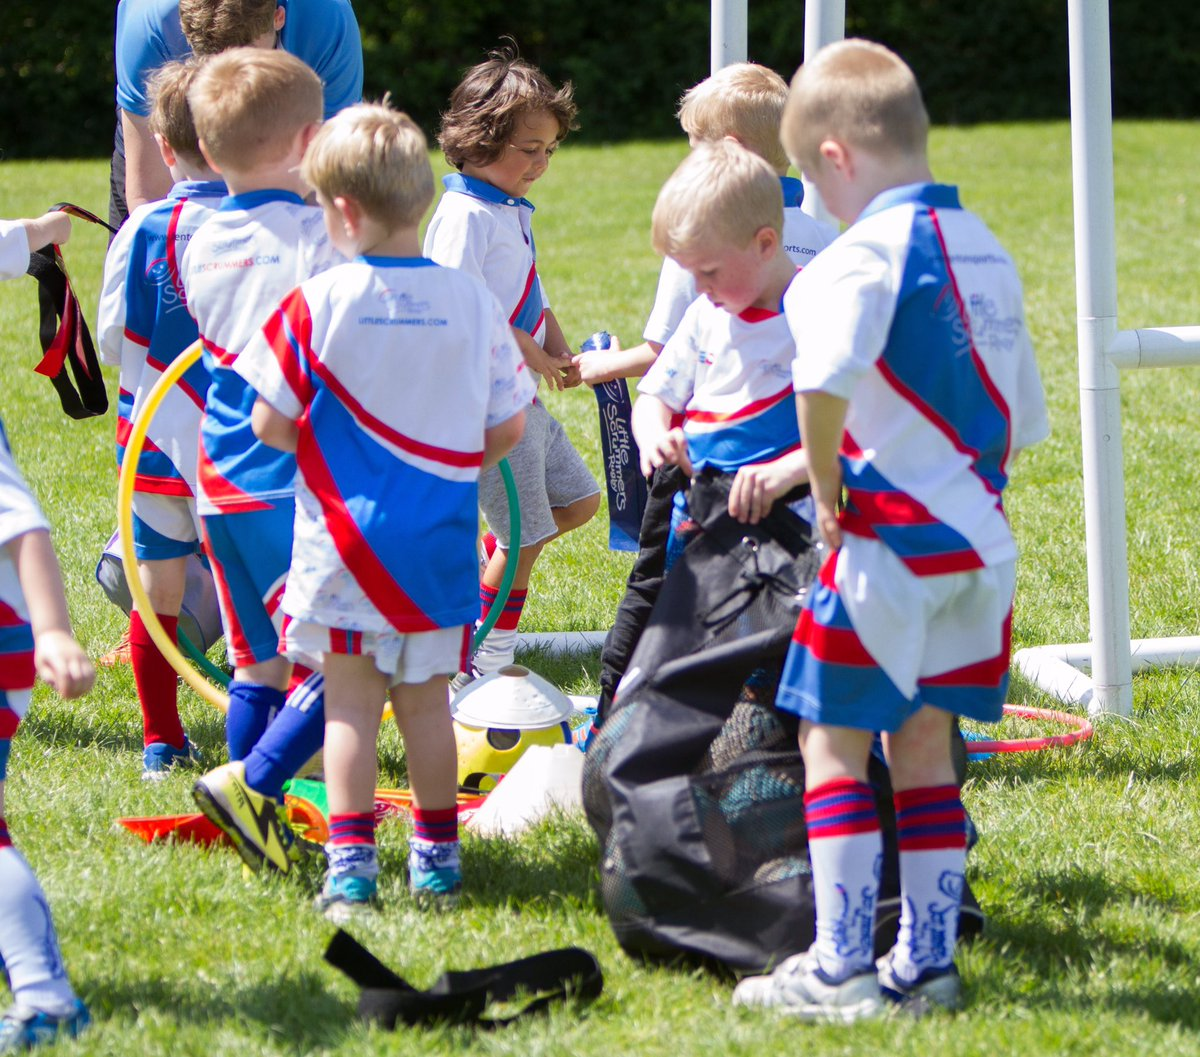 Morning Little Scrummers! Looking forward to seeing you &amp; having lots of #rugby fun on the pitches! #littlescrummers #wearemore #rugbyfamily <br>http://pic.twitter.com/X3CdRgXf61